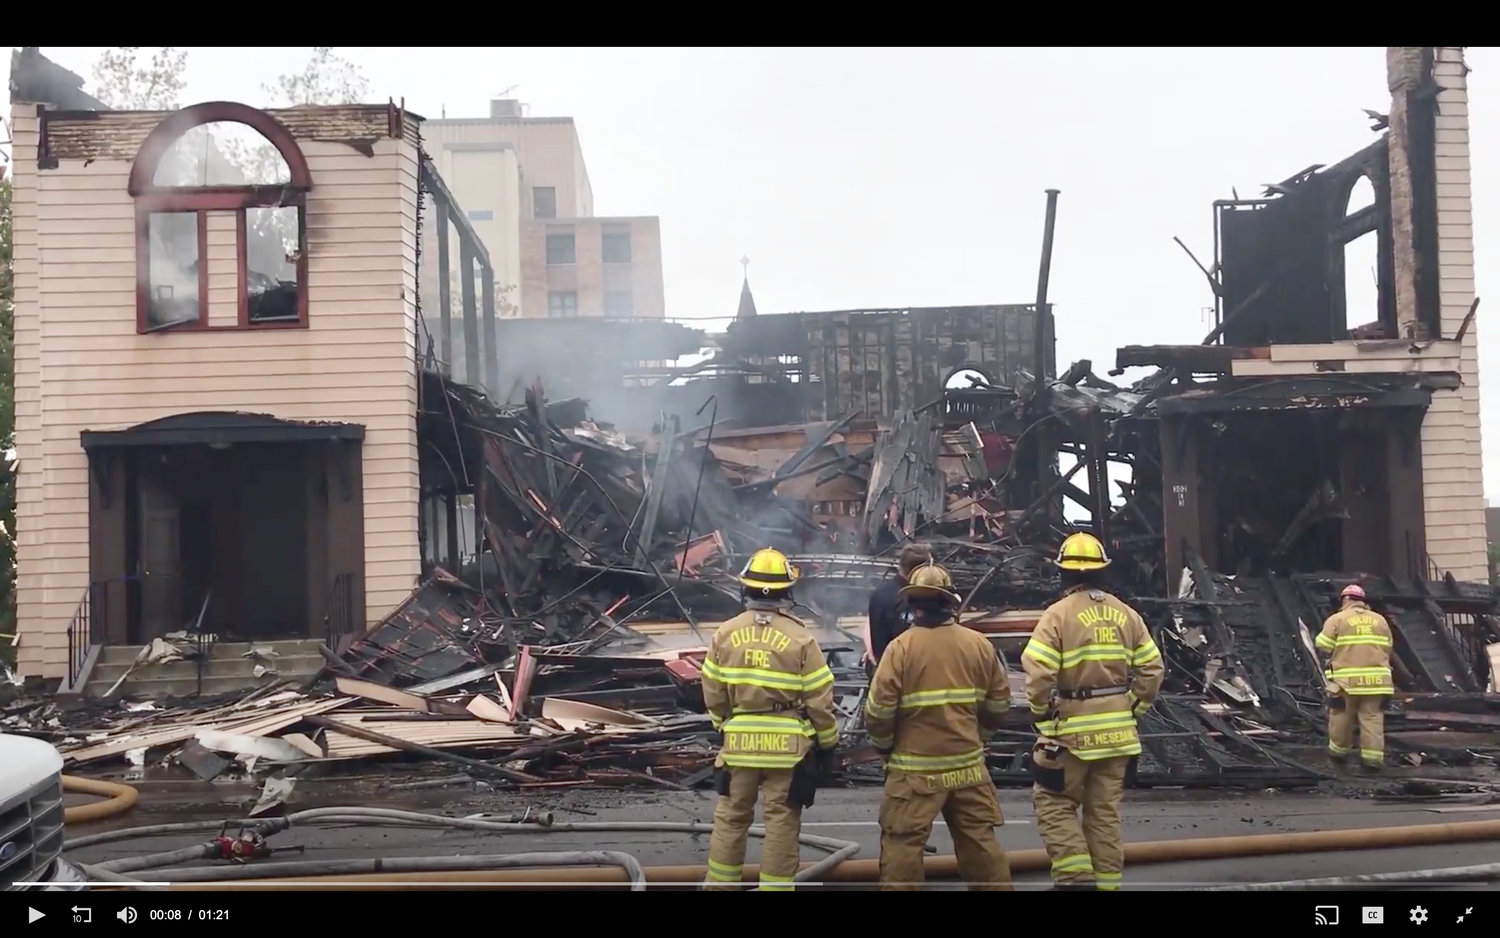 Adas Israel Congregation in Duluth, Minn., burned down of yet unknown causes.